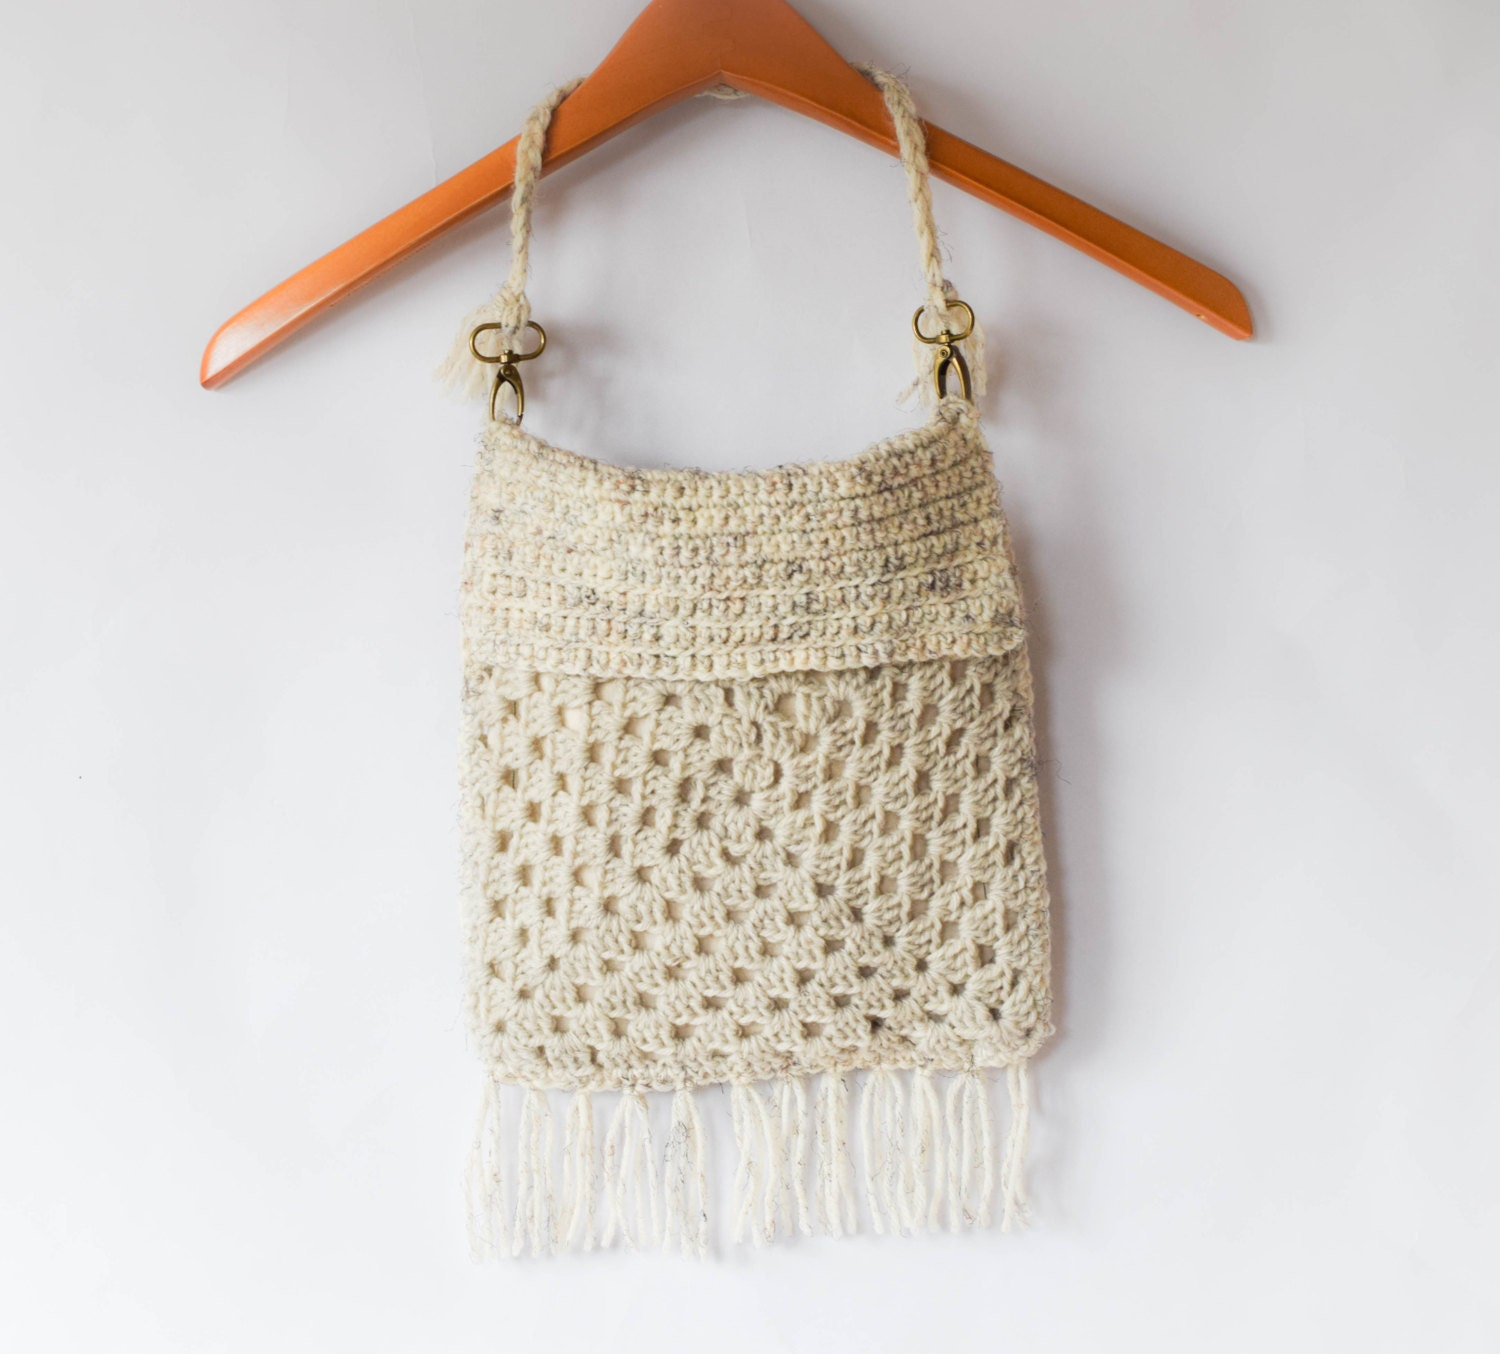 Crochet Fringe Bag : Boho Crochet Fringed Bag by MamaInAStitch on Etsy